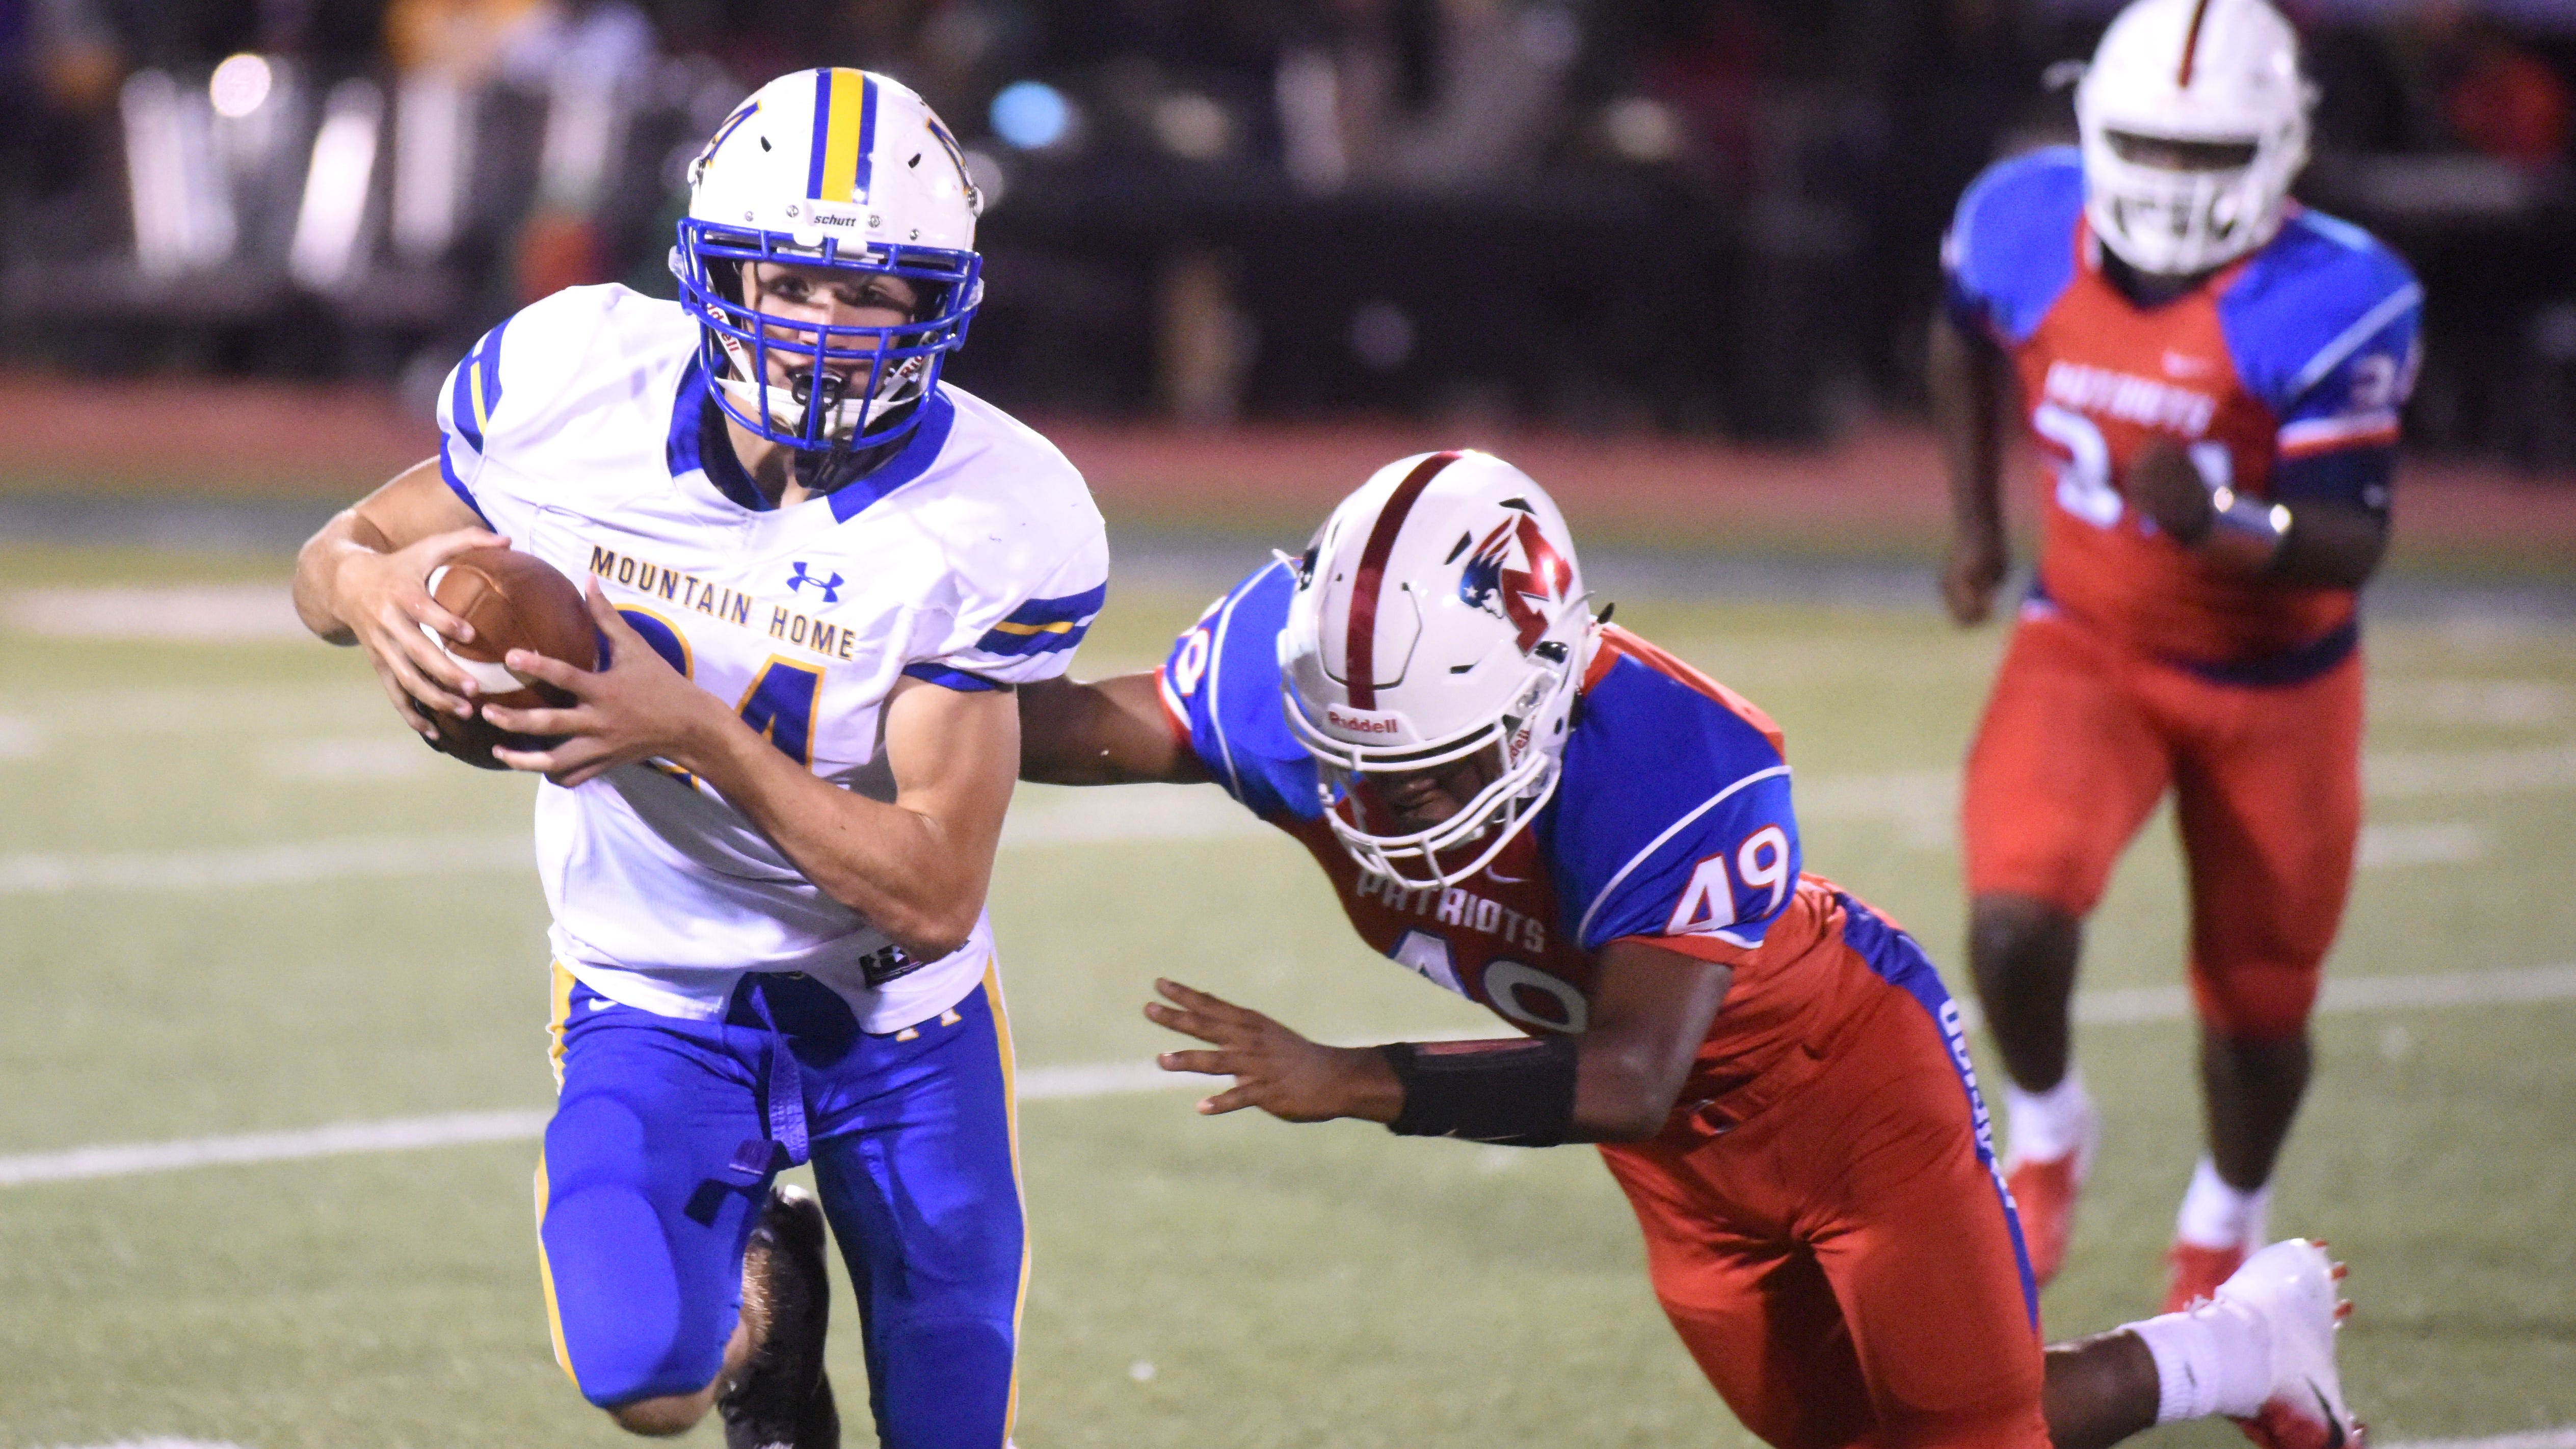 Mountain Home's Lawson Stockton runs past a Marion defender during last week's game at Marion.